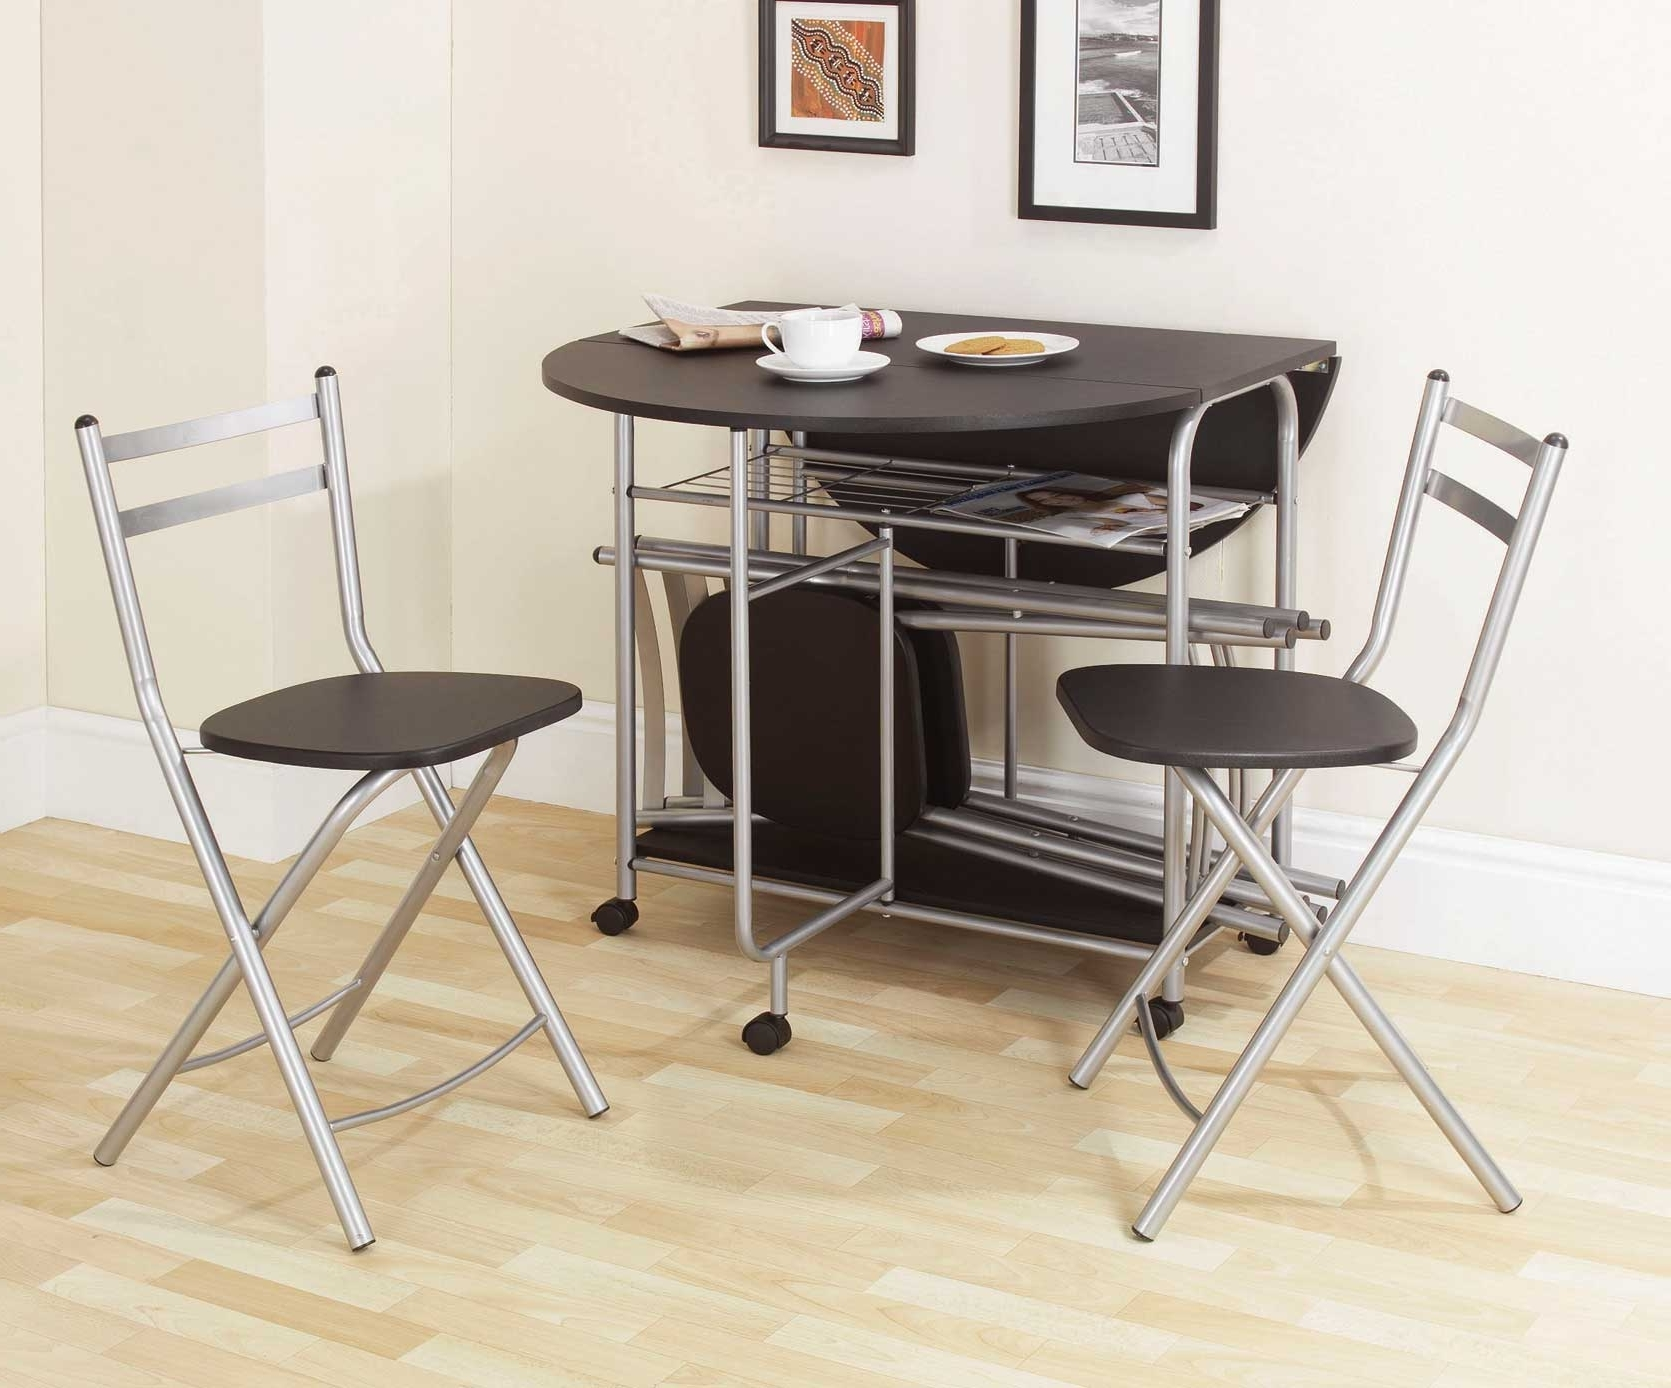 e13633f3649 Interesting folding tables for small spaces